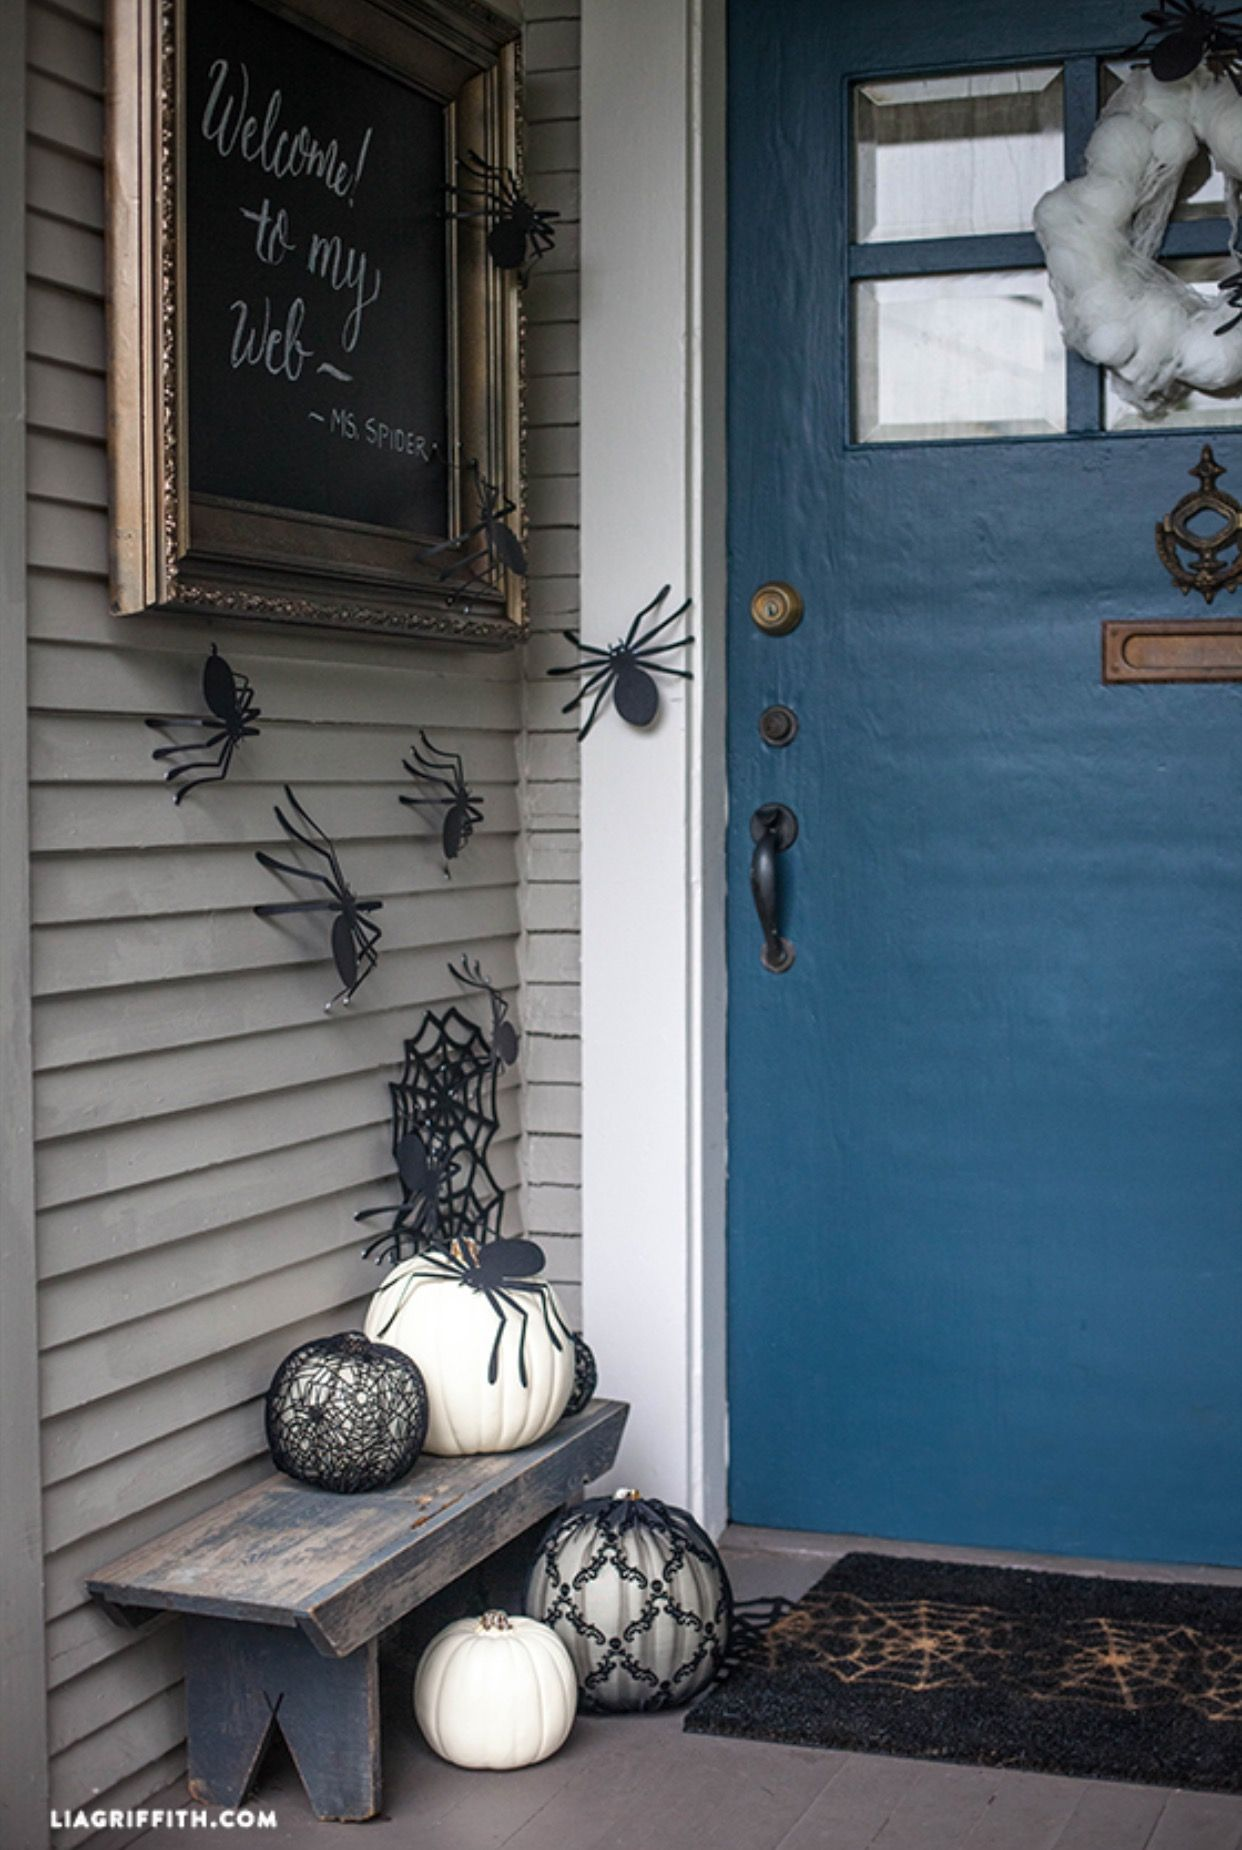 Very lovely for Halloween Halloween decorating Pinterest Interiors - front door halloween decorations